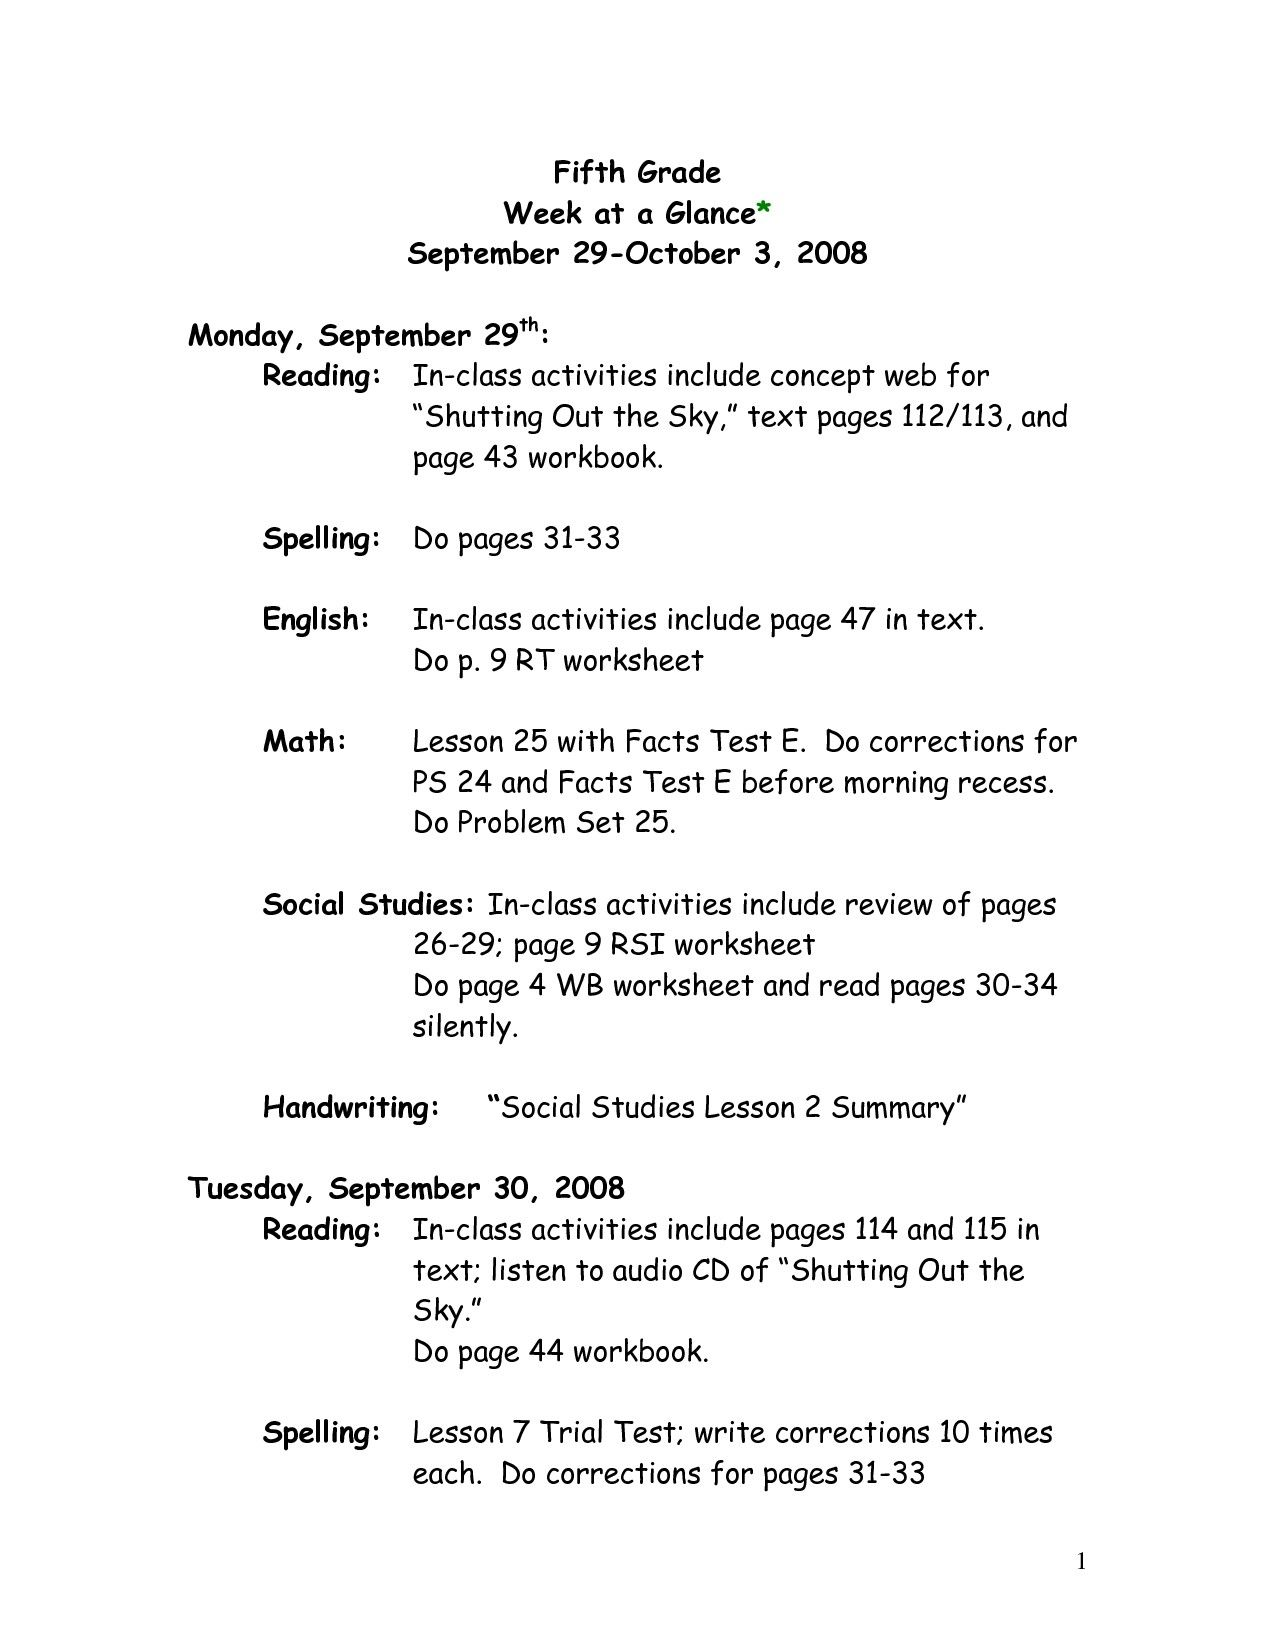 9 Official Parts Of Speech Worksheets 5th Grade di 2020